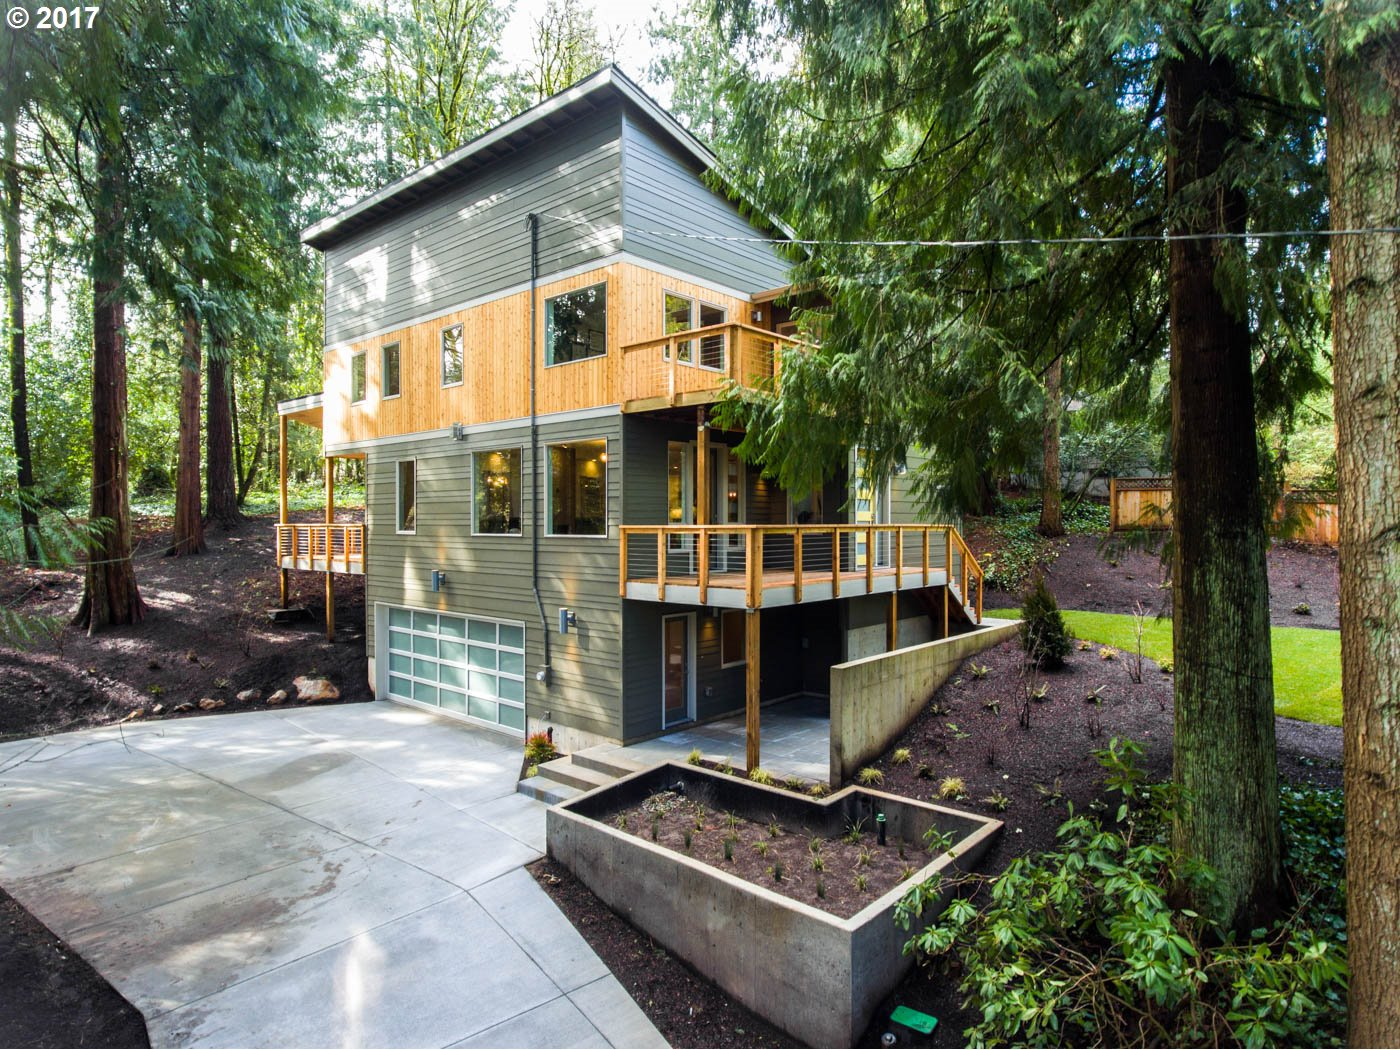 3046 sq. ft 3 bedrooms 2 bathrooms  House For Sale,Portland, OR